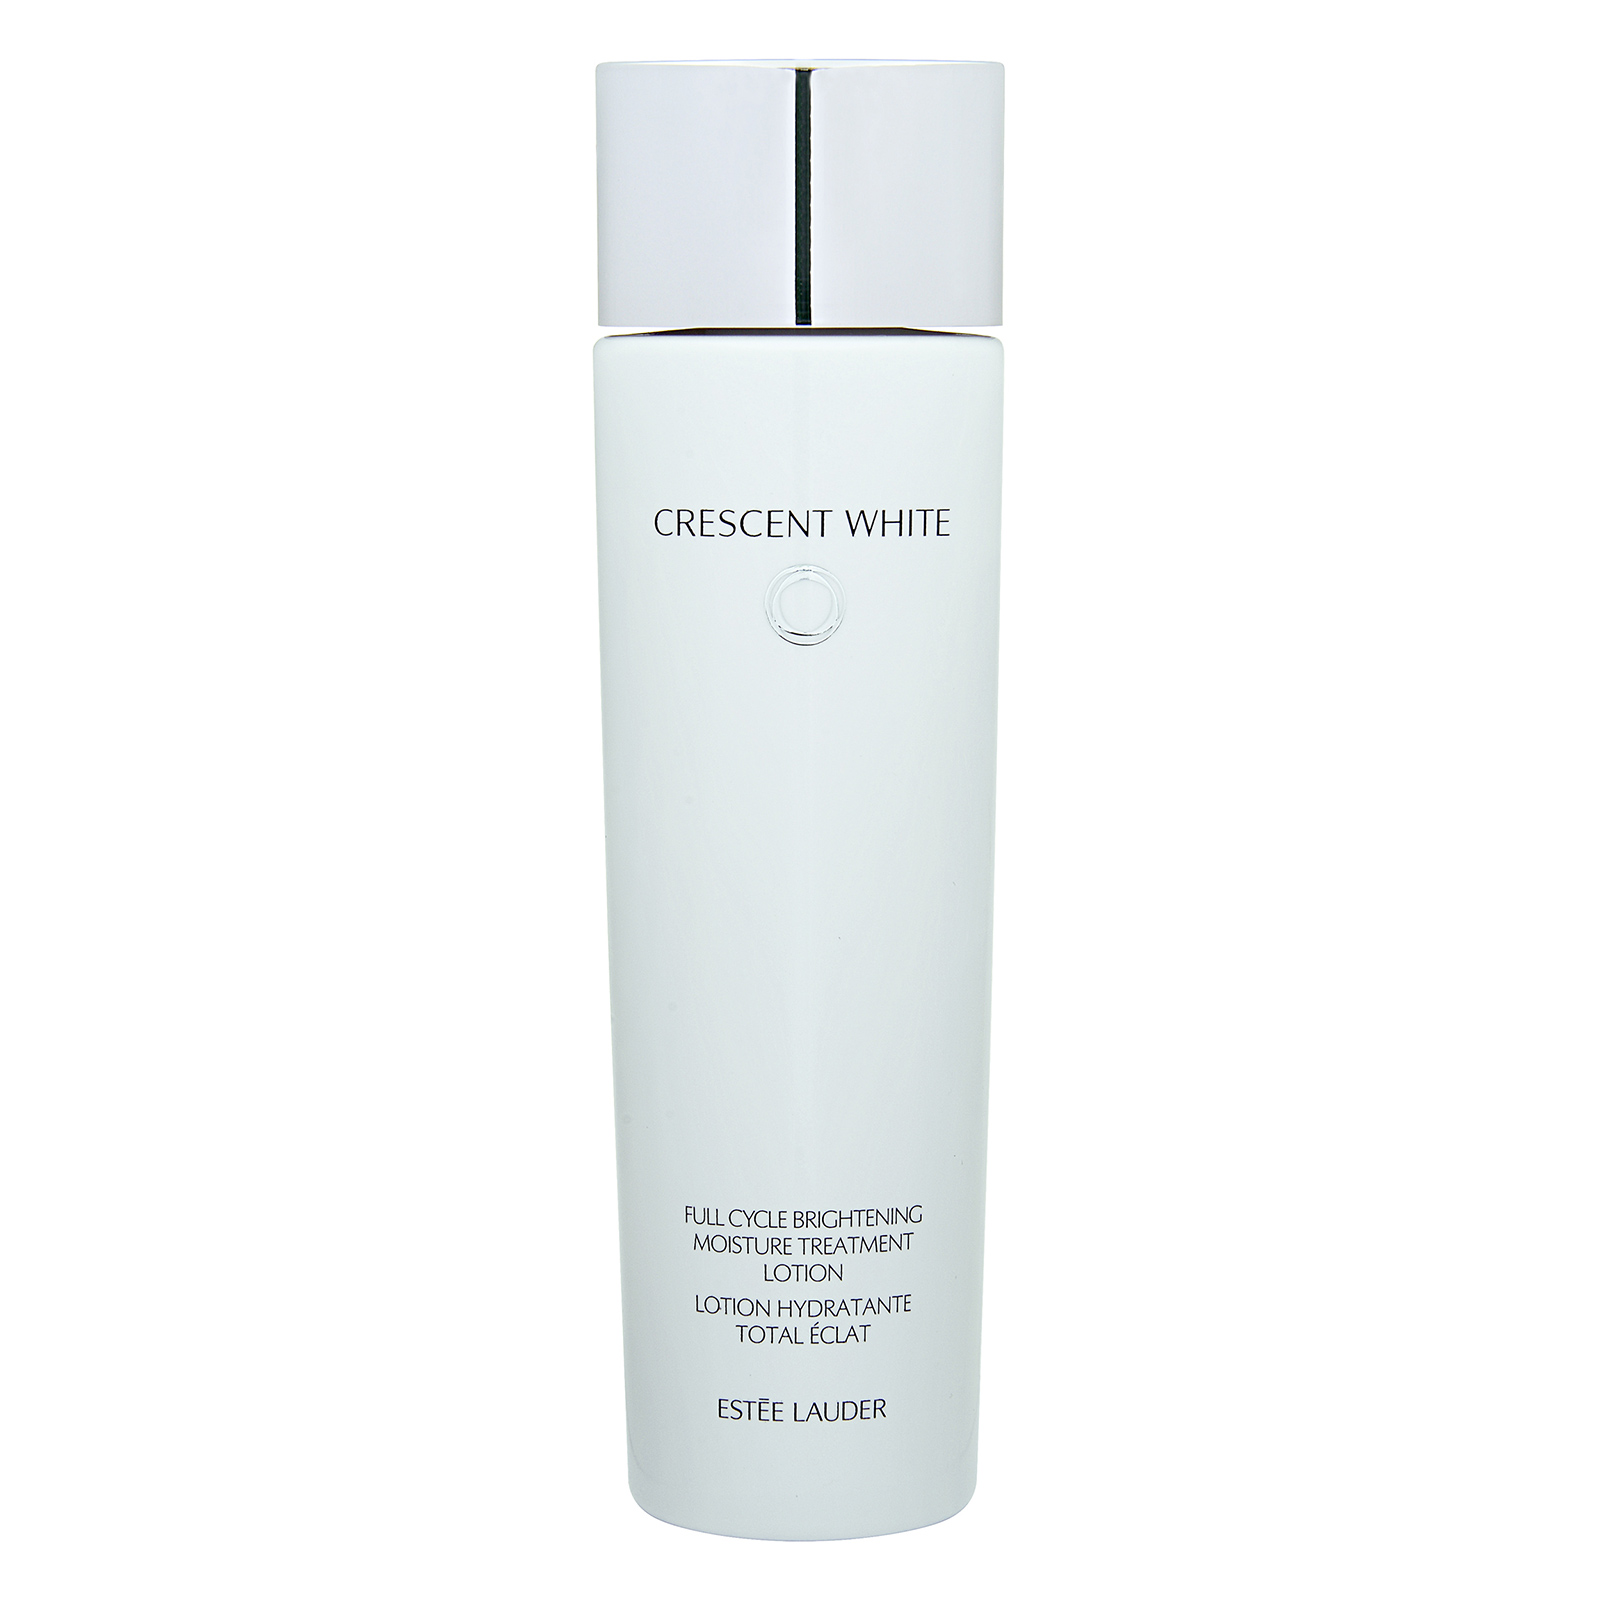 Estée Lauder Crescent White  Full Cycle Brightening Moisture Treatment Lotion 6.7oz, 200ml